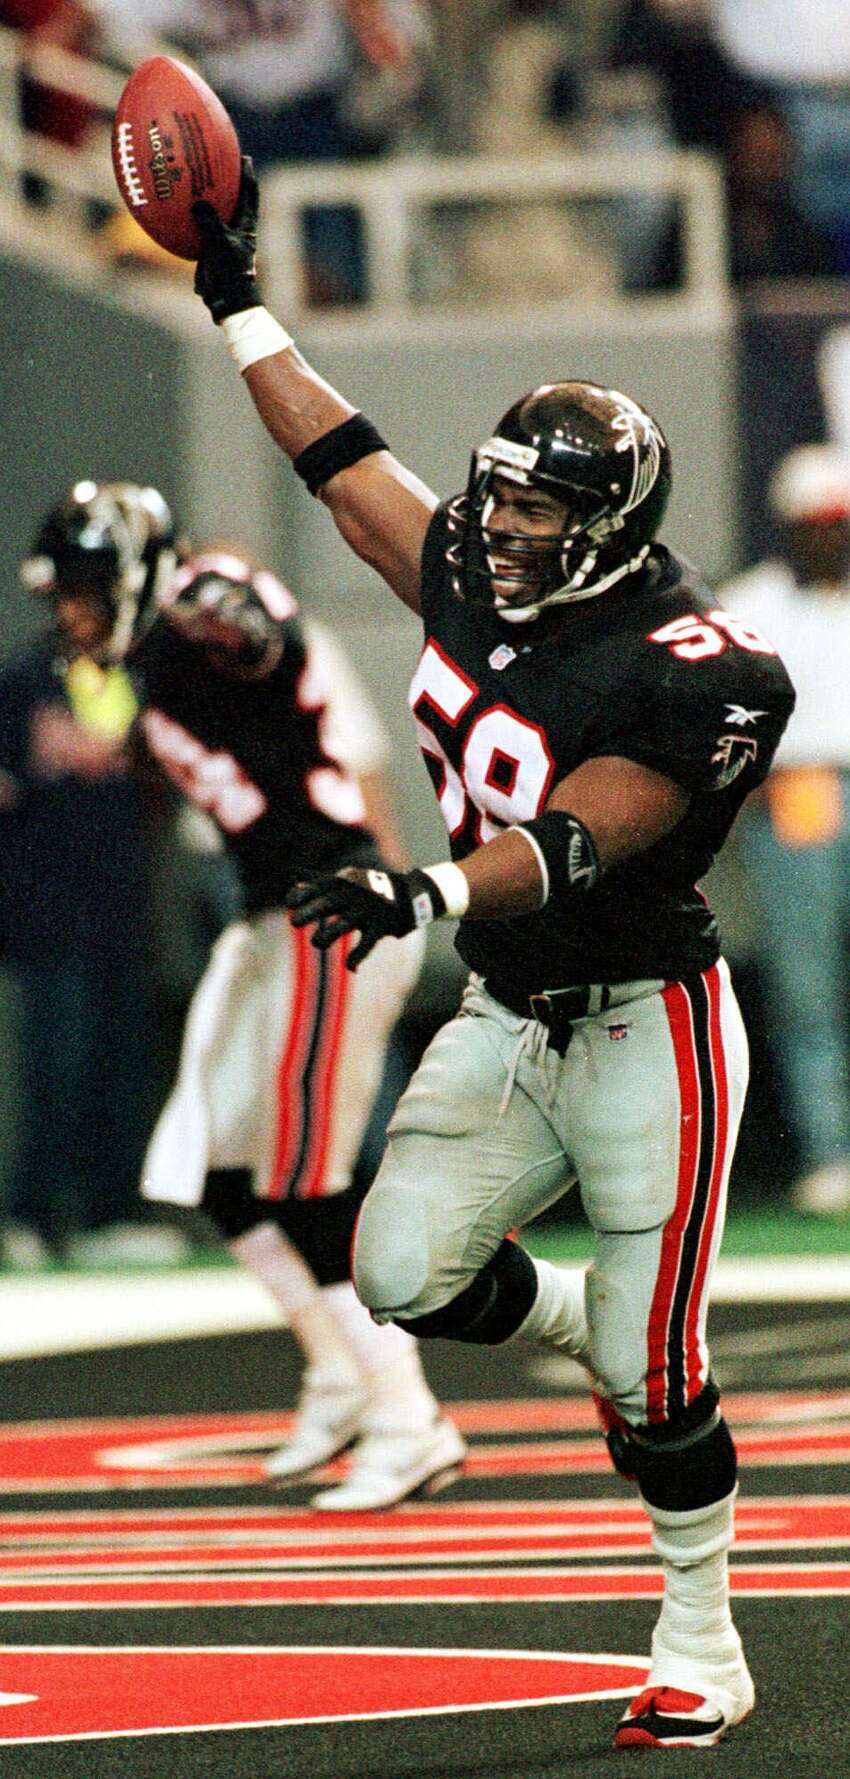 Atlanta Falcons: LB Jessie Tuggle, Valdosta State. A 5-time Pro Bowler, Tuggle was a mainstay with the Falcons for 14 seasons. He averaged 184 tackles from 1988-93.PHOTO: Tuggle (58) celebrates a second half touchdown on a San Francisco 49ers Steve Young fumble in Atlanta on Nov. 15, 1998.